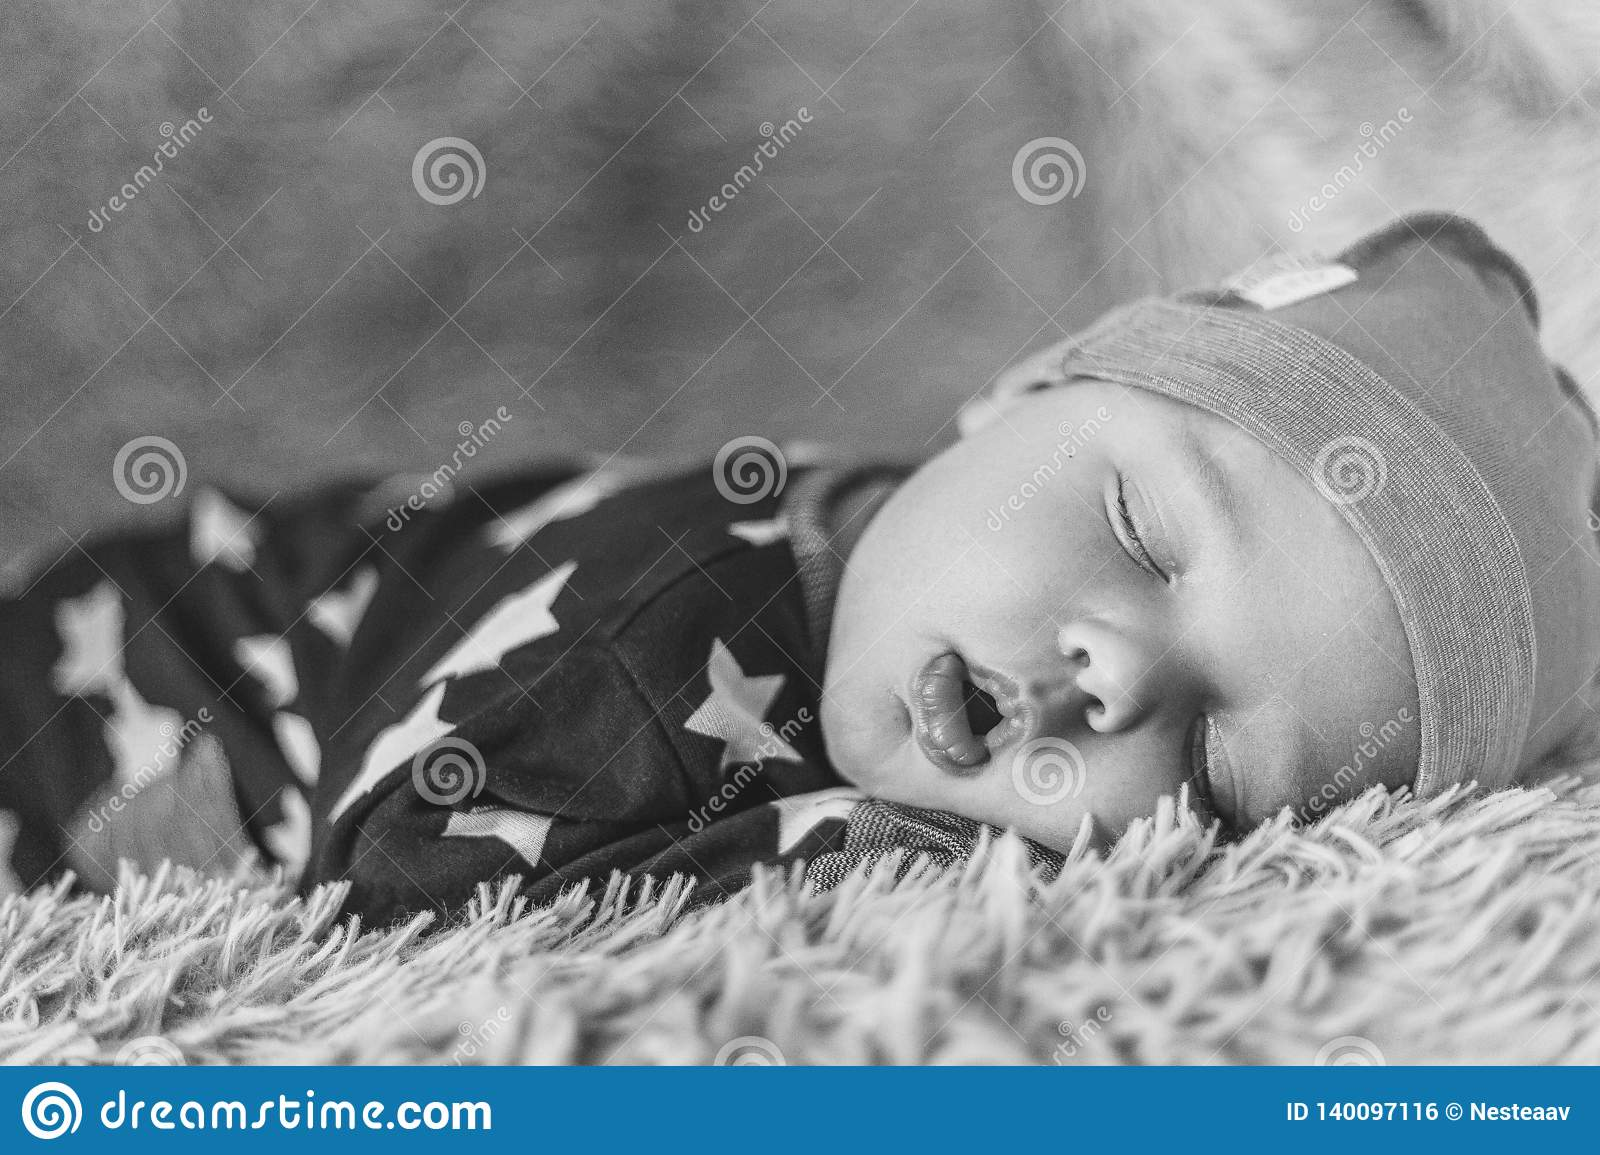 Sleeping Newborn Baby On A Blanket In Hat Black And White